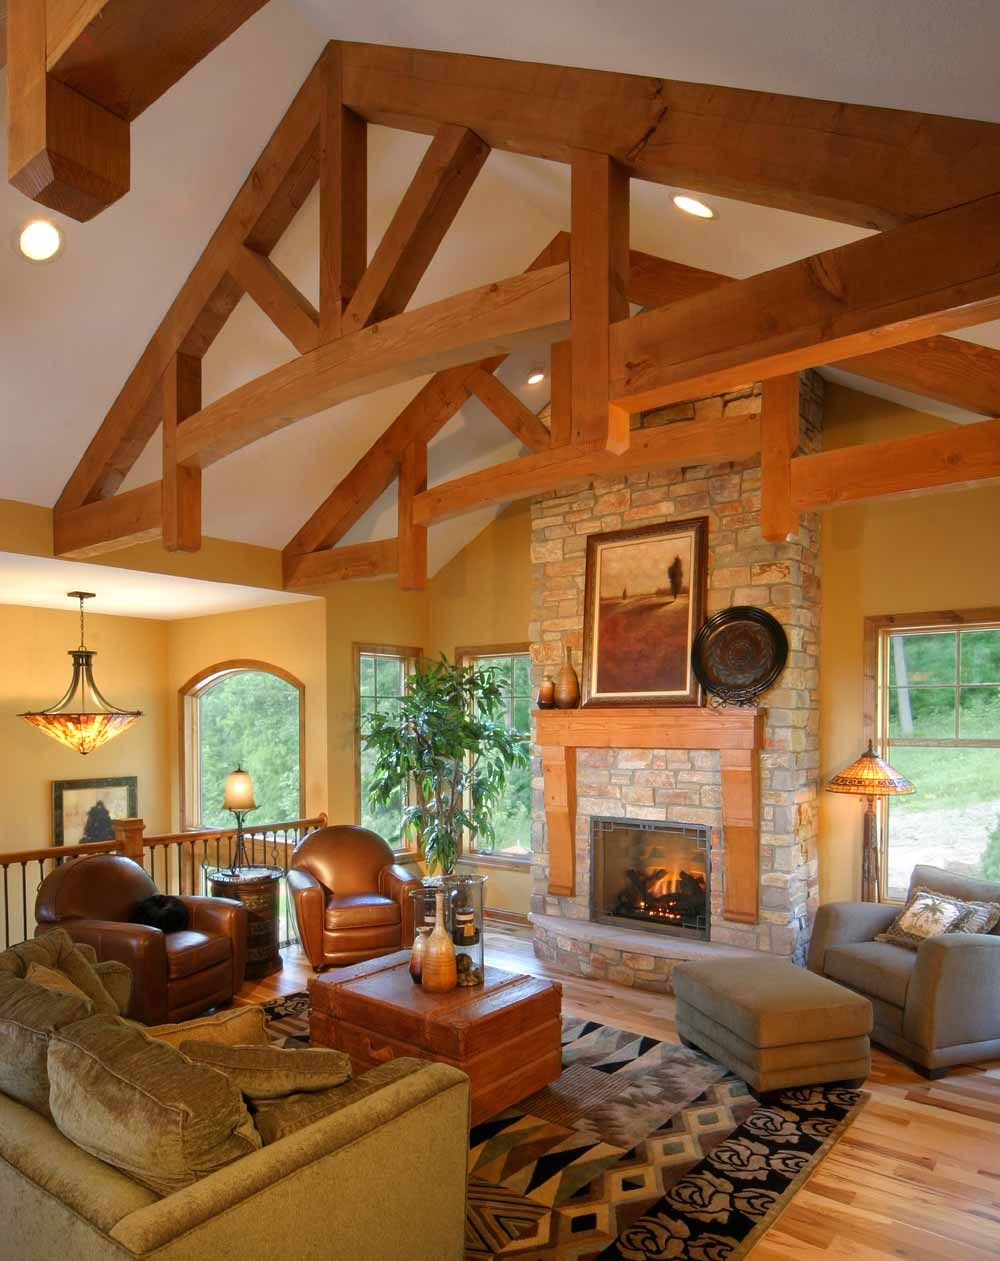 how to find ceiling joists in apartment